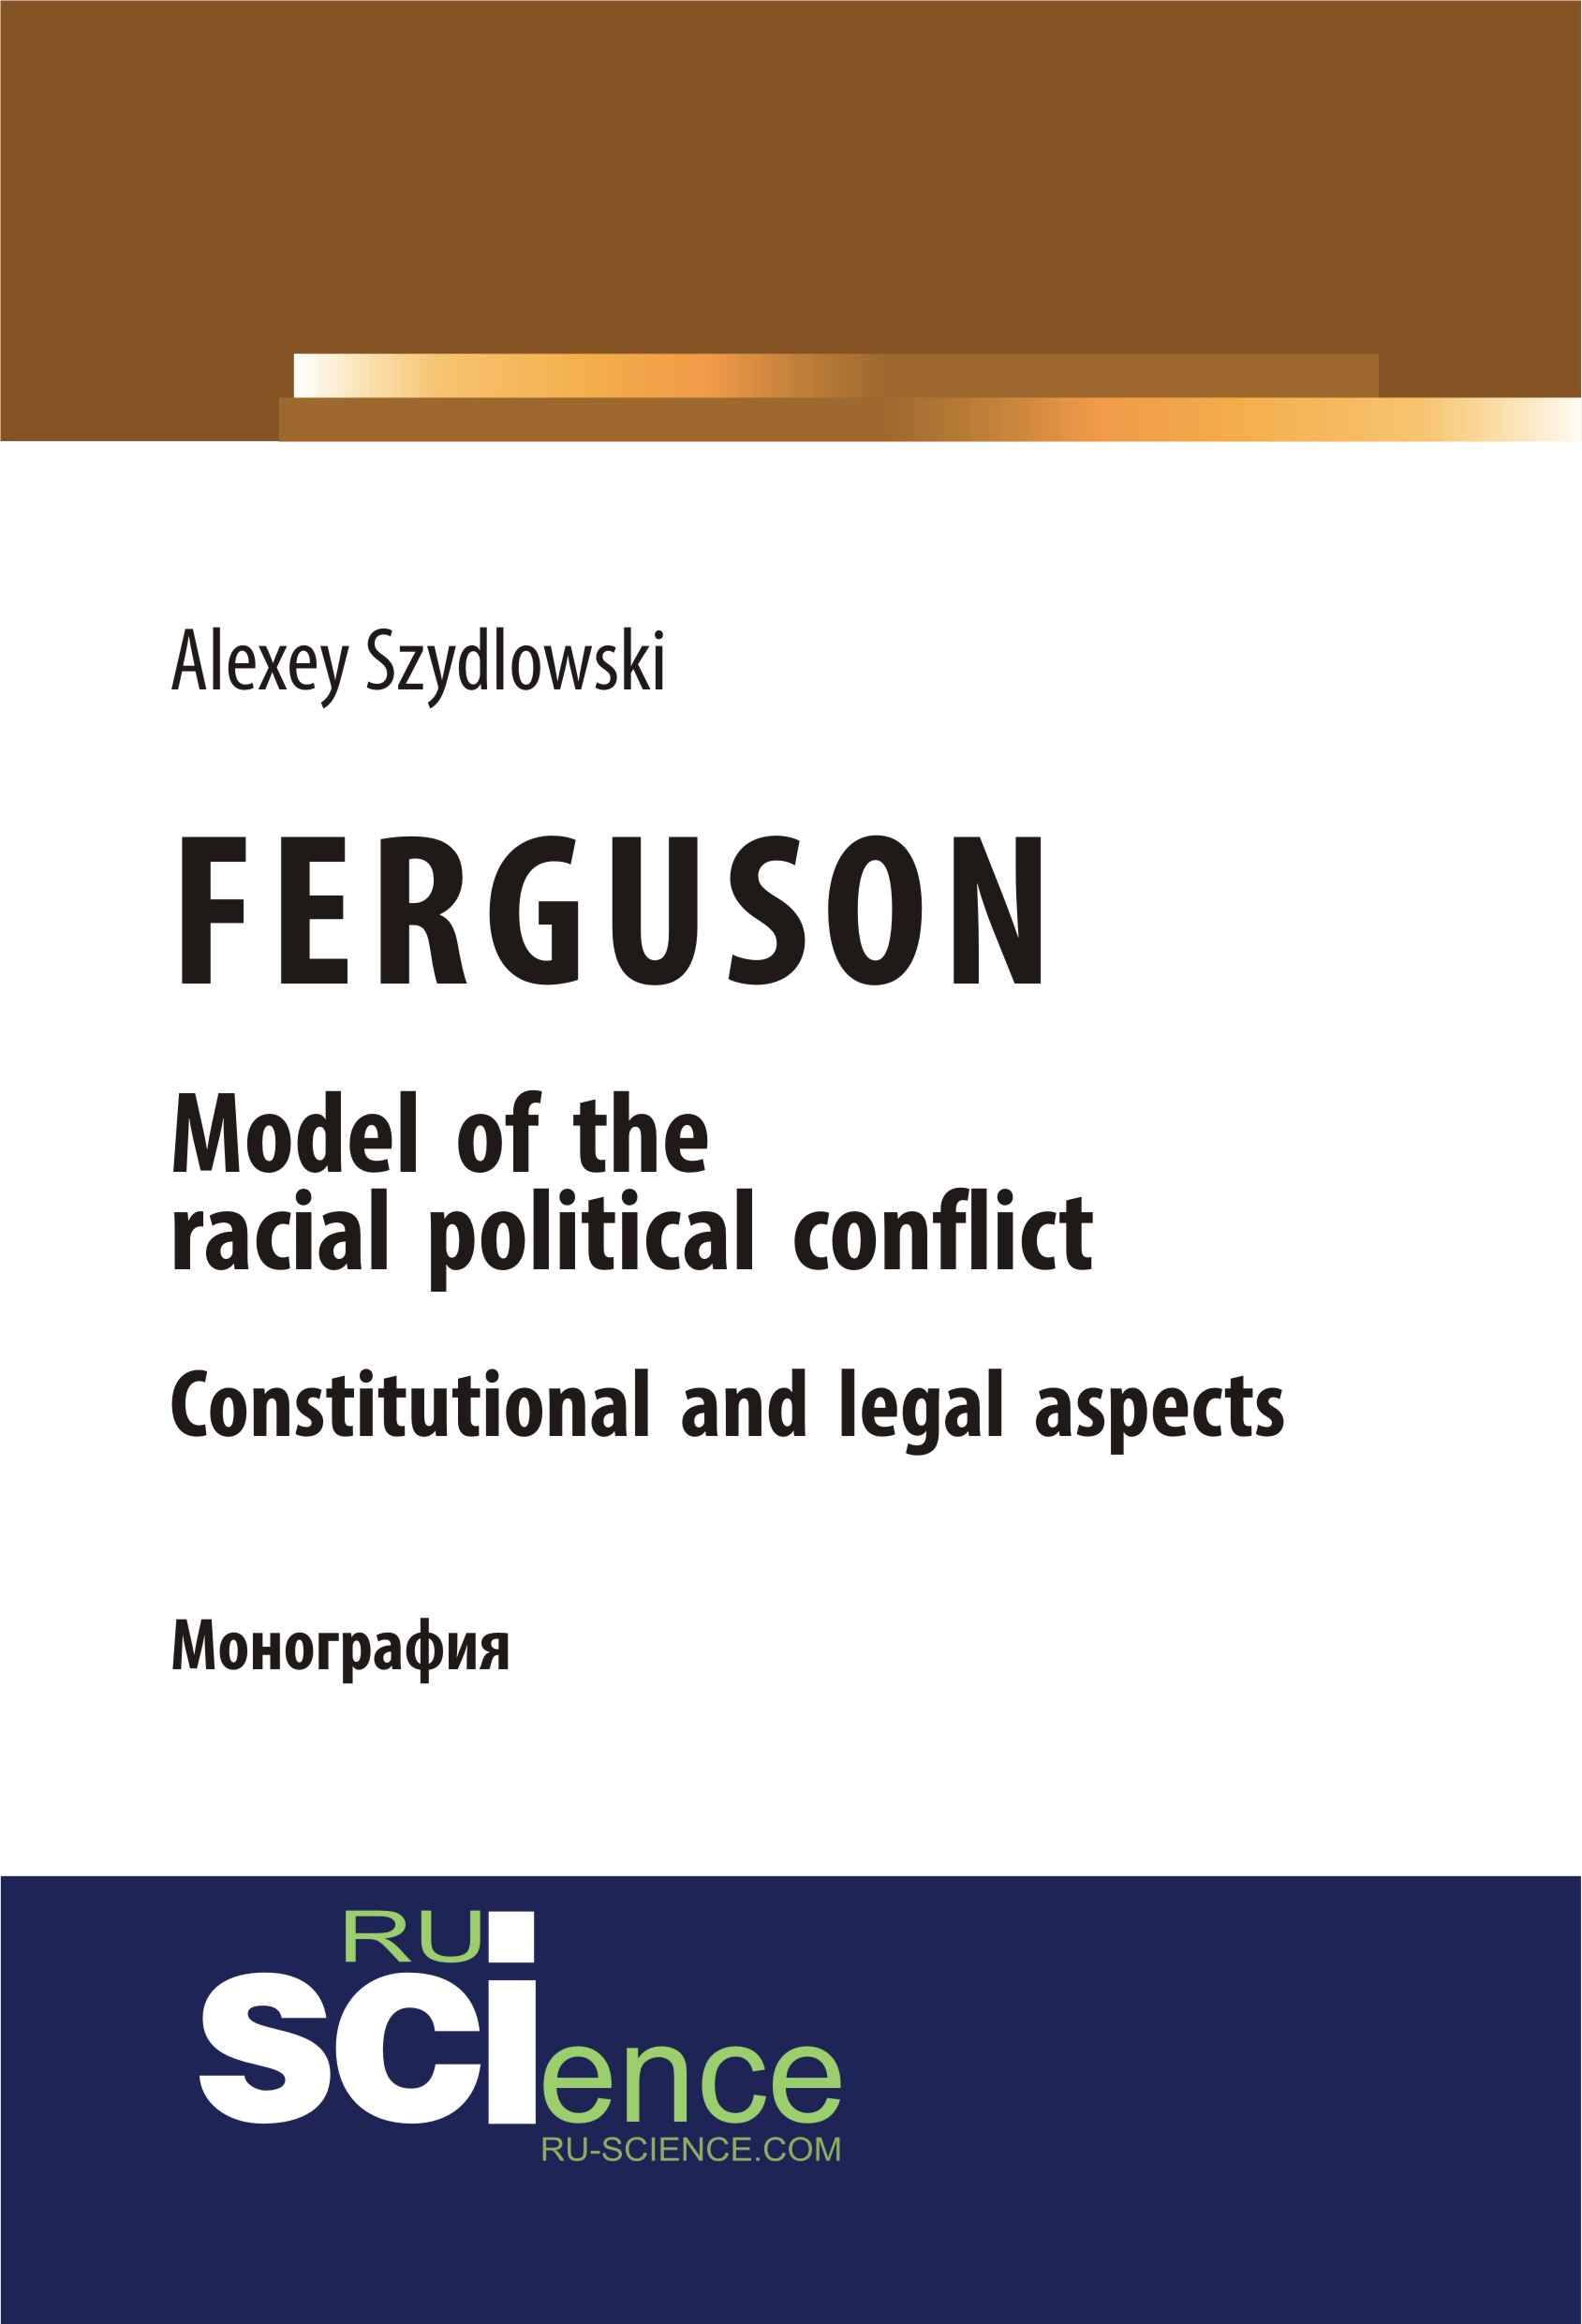 Alexey Szydlowski FERGUSON. Model of the racial political conflict. Constitutional and legal aspects the racial economy of science